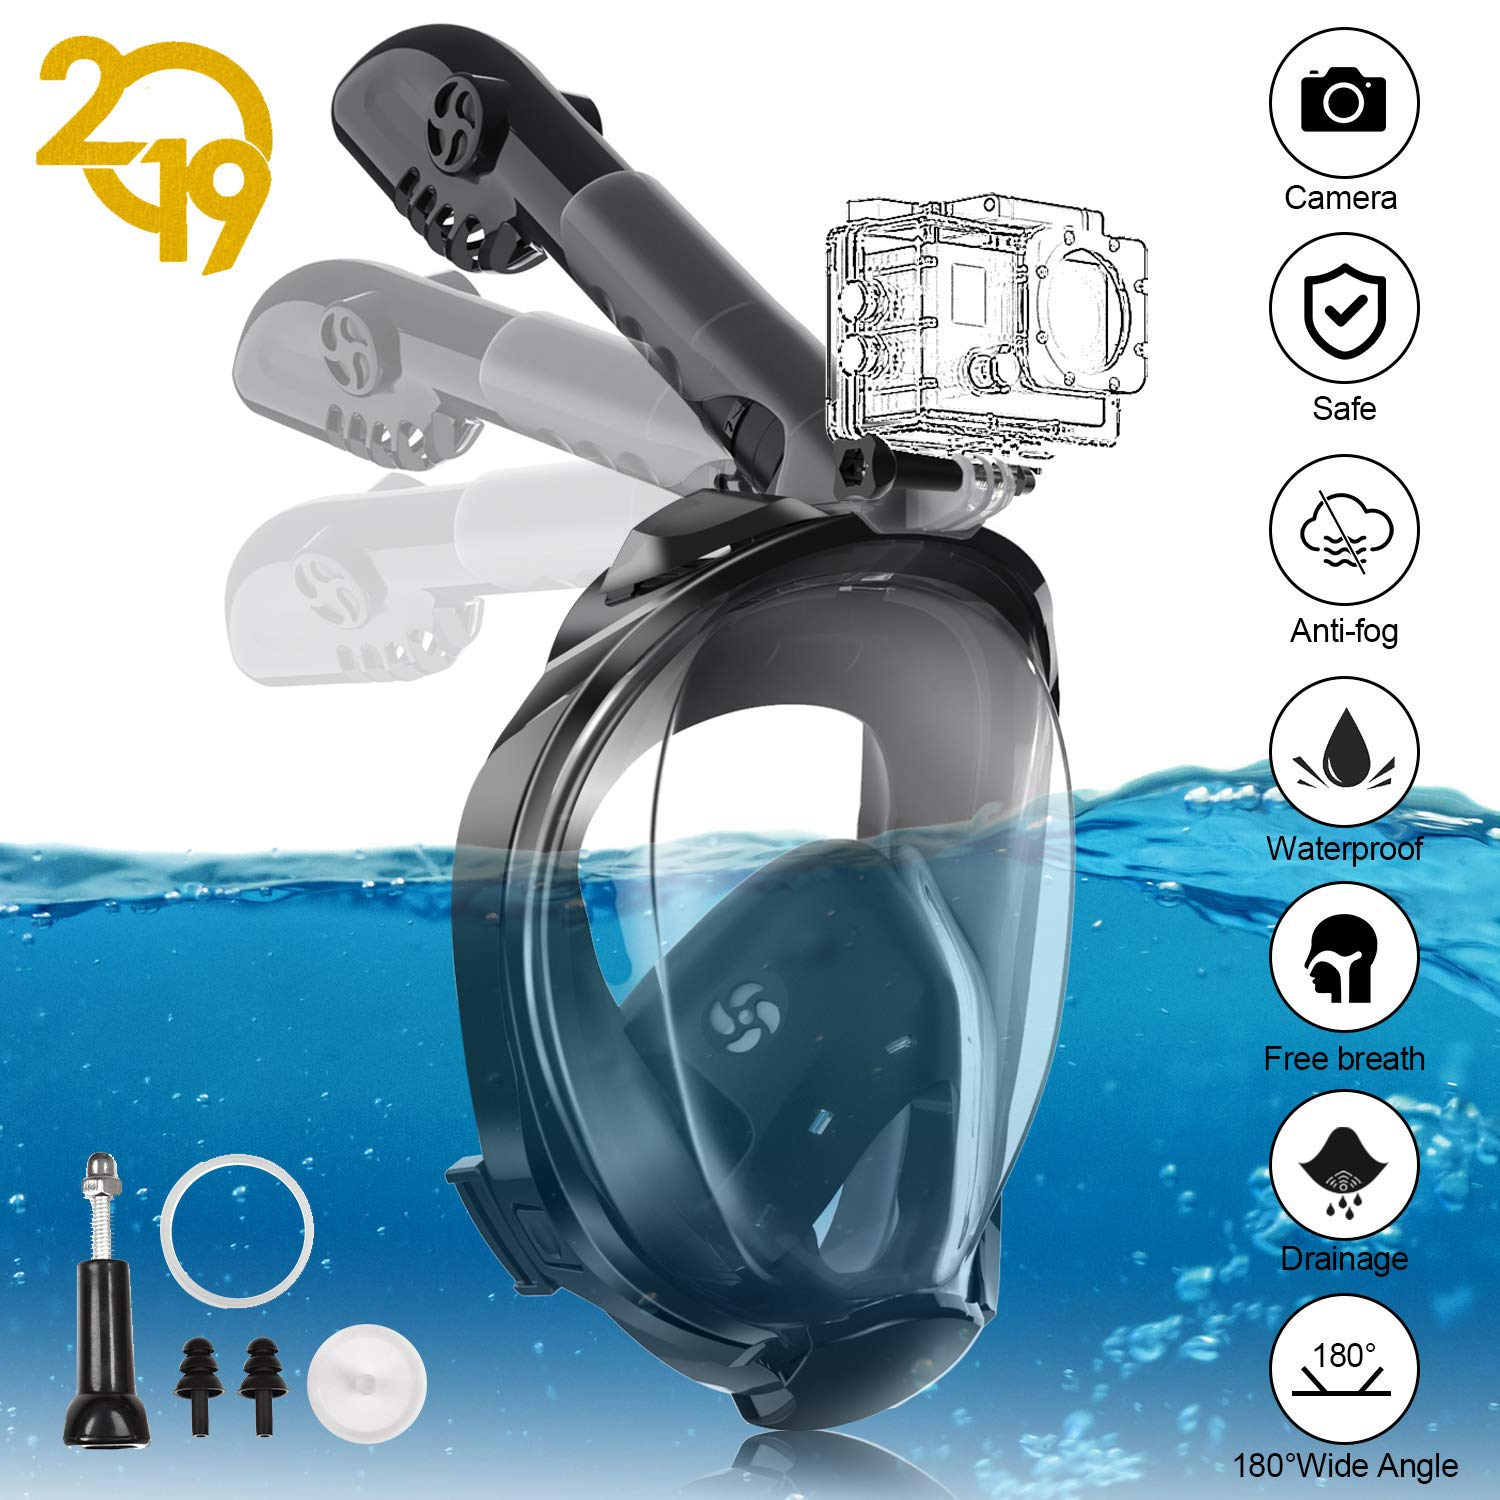 YUNDOO Full Face Snorkel Mask, 180°Panoramic View Free Breathing Foldable Tube Design, Anti-Leak Anti-Fog Snorkeling Diving Mask with Detachable Camera Mount & Adjustable Head Straps for Adult Black by YUNDOO